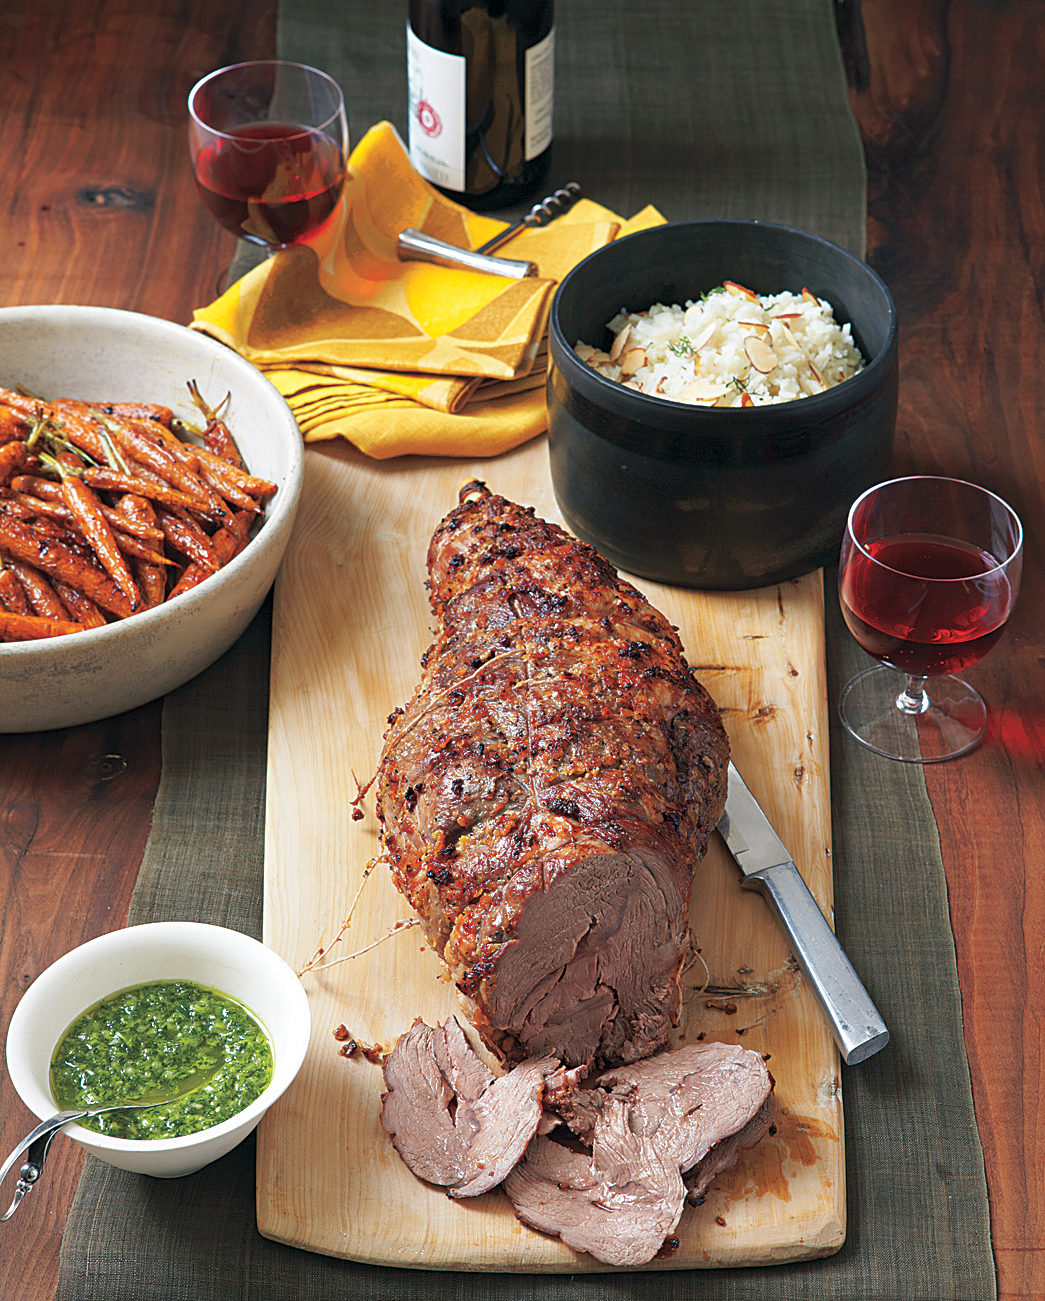 Clone of Roasted Leg of Lamb With Carrots and Honey-Mint Sauce (Roasting Recipes)